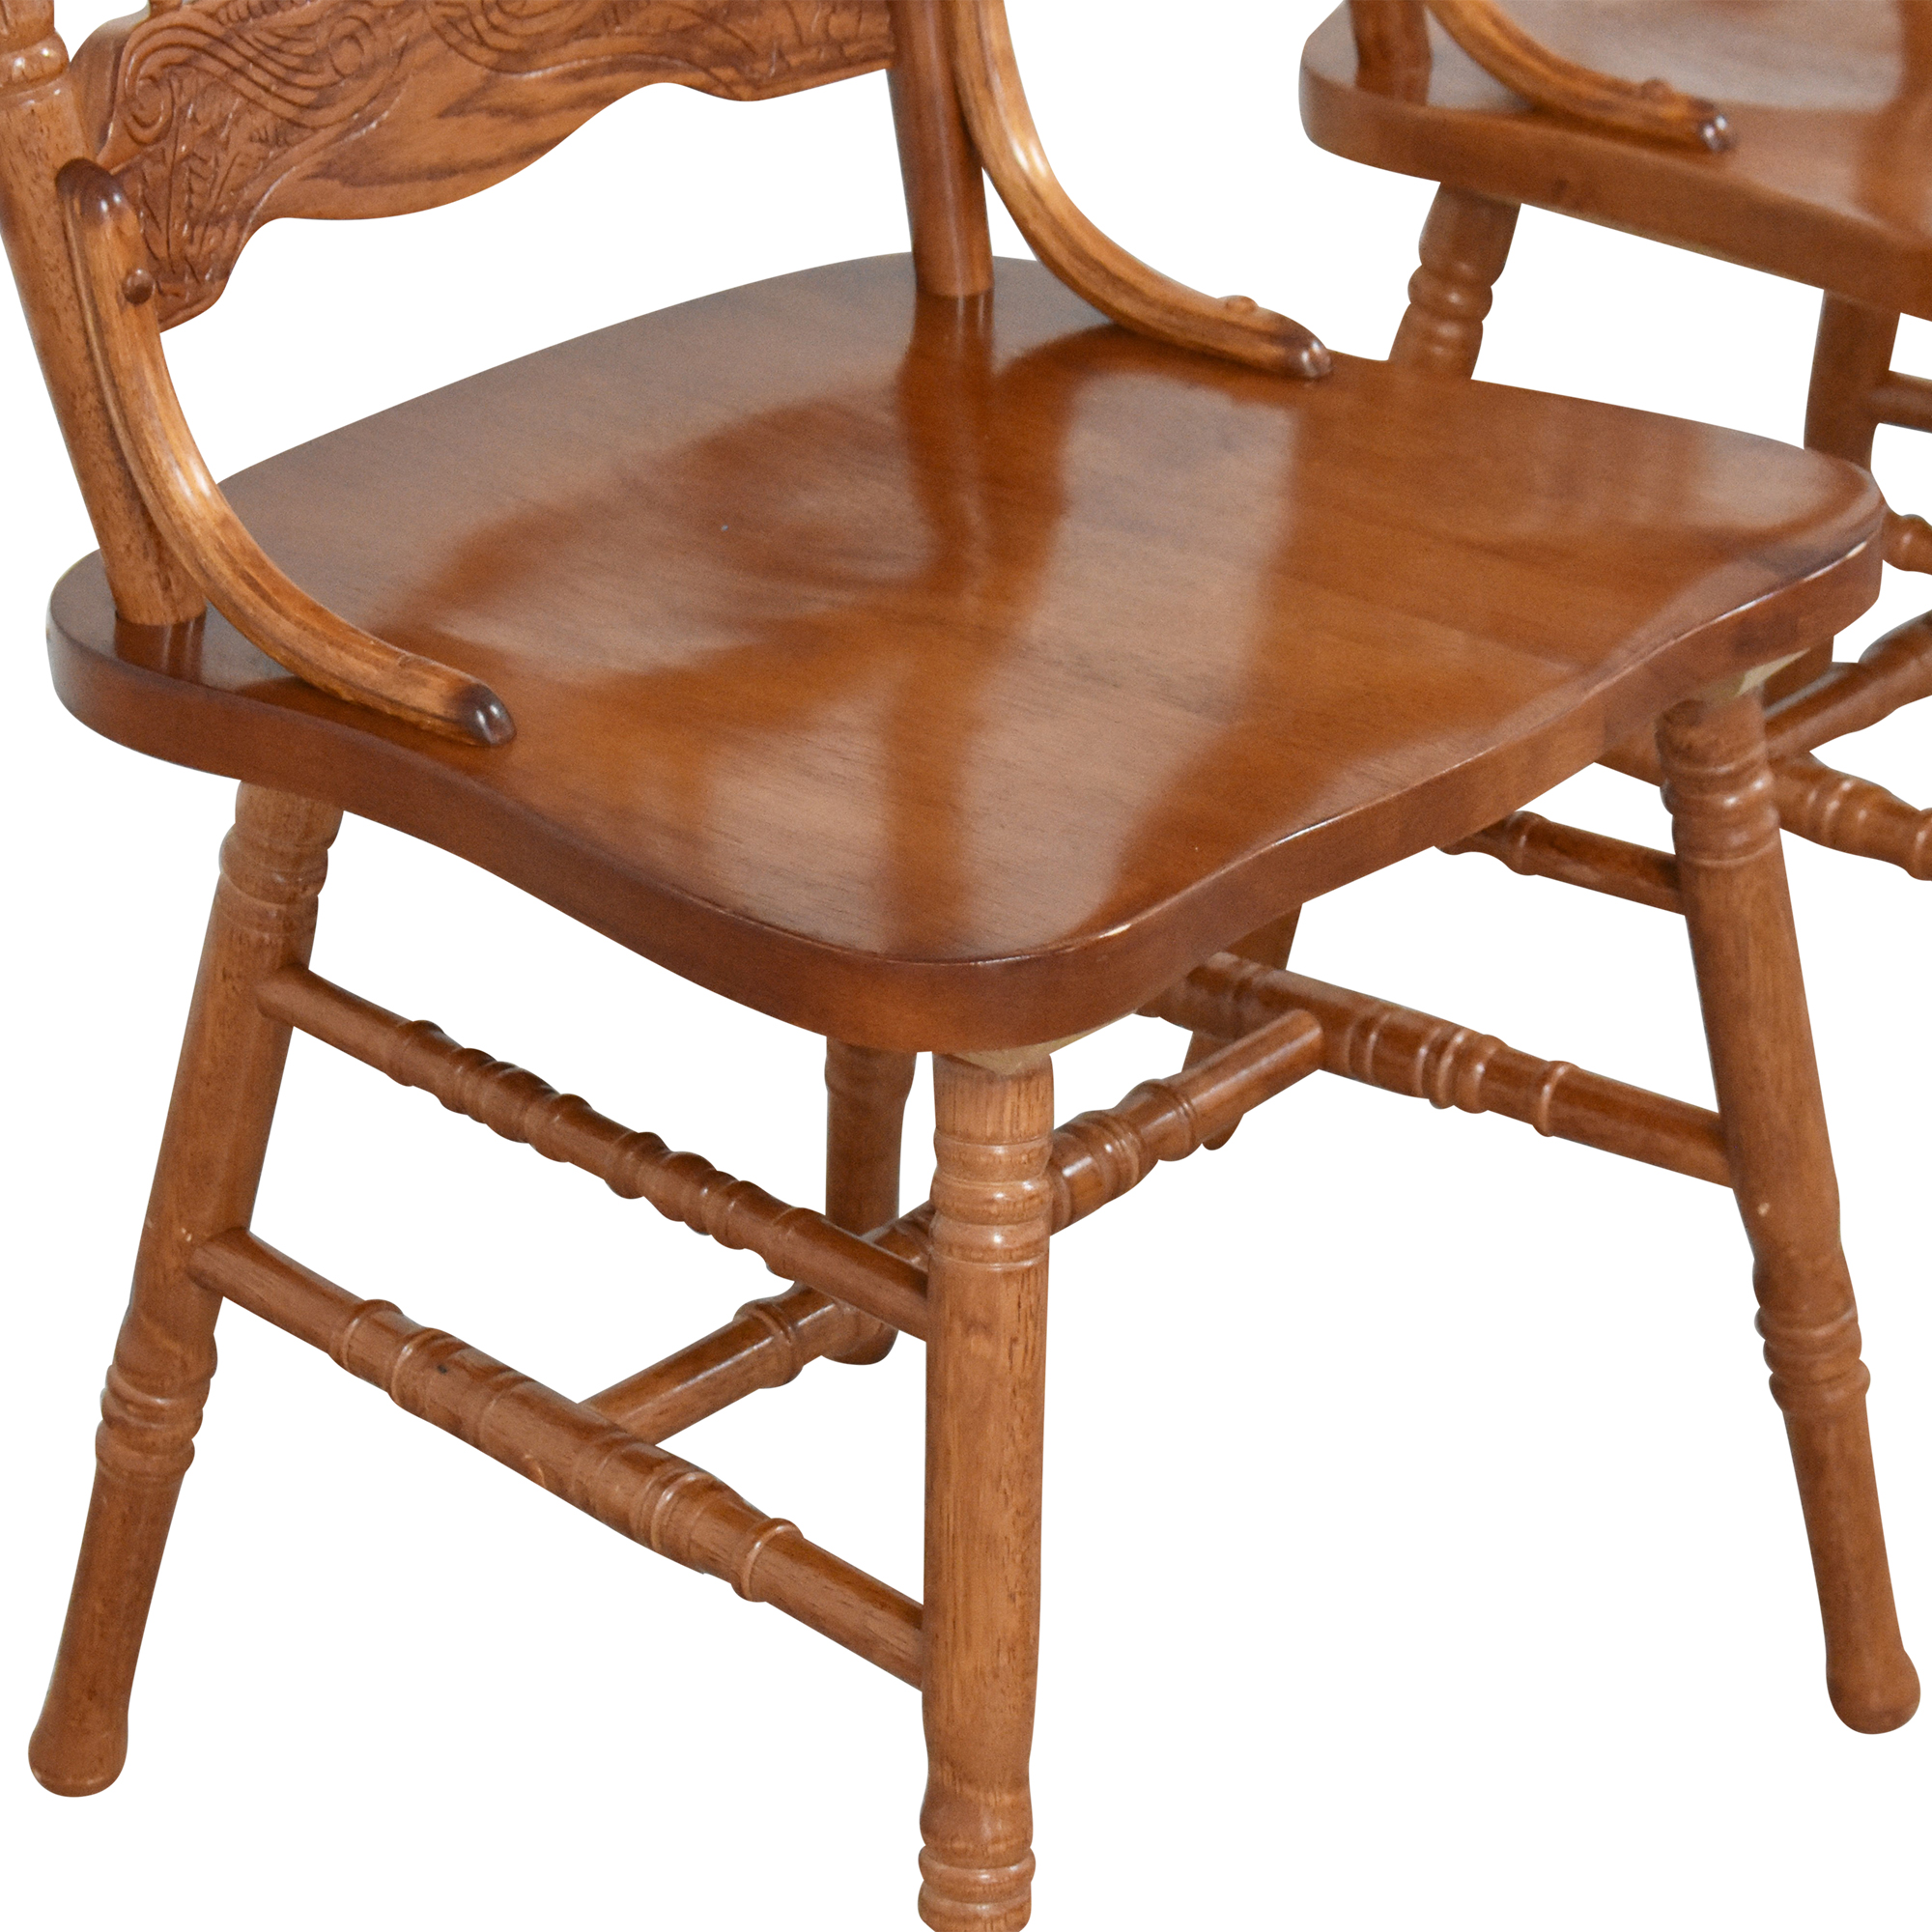 Poundex Poundex Pressback Dining Chairs second hand